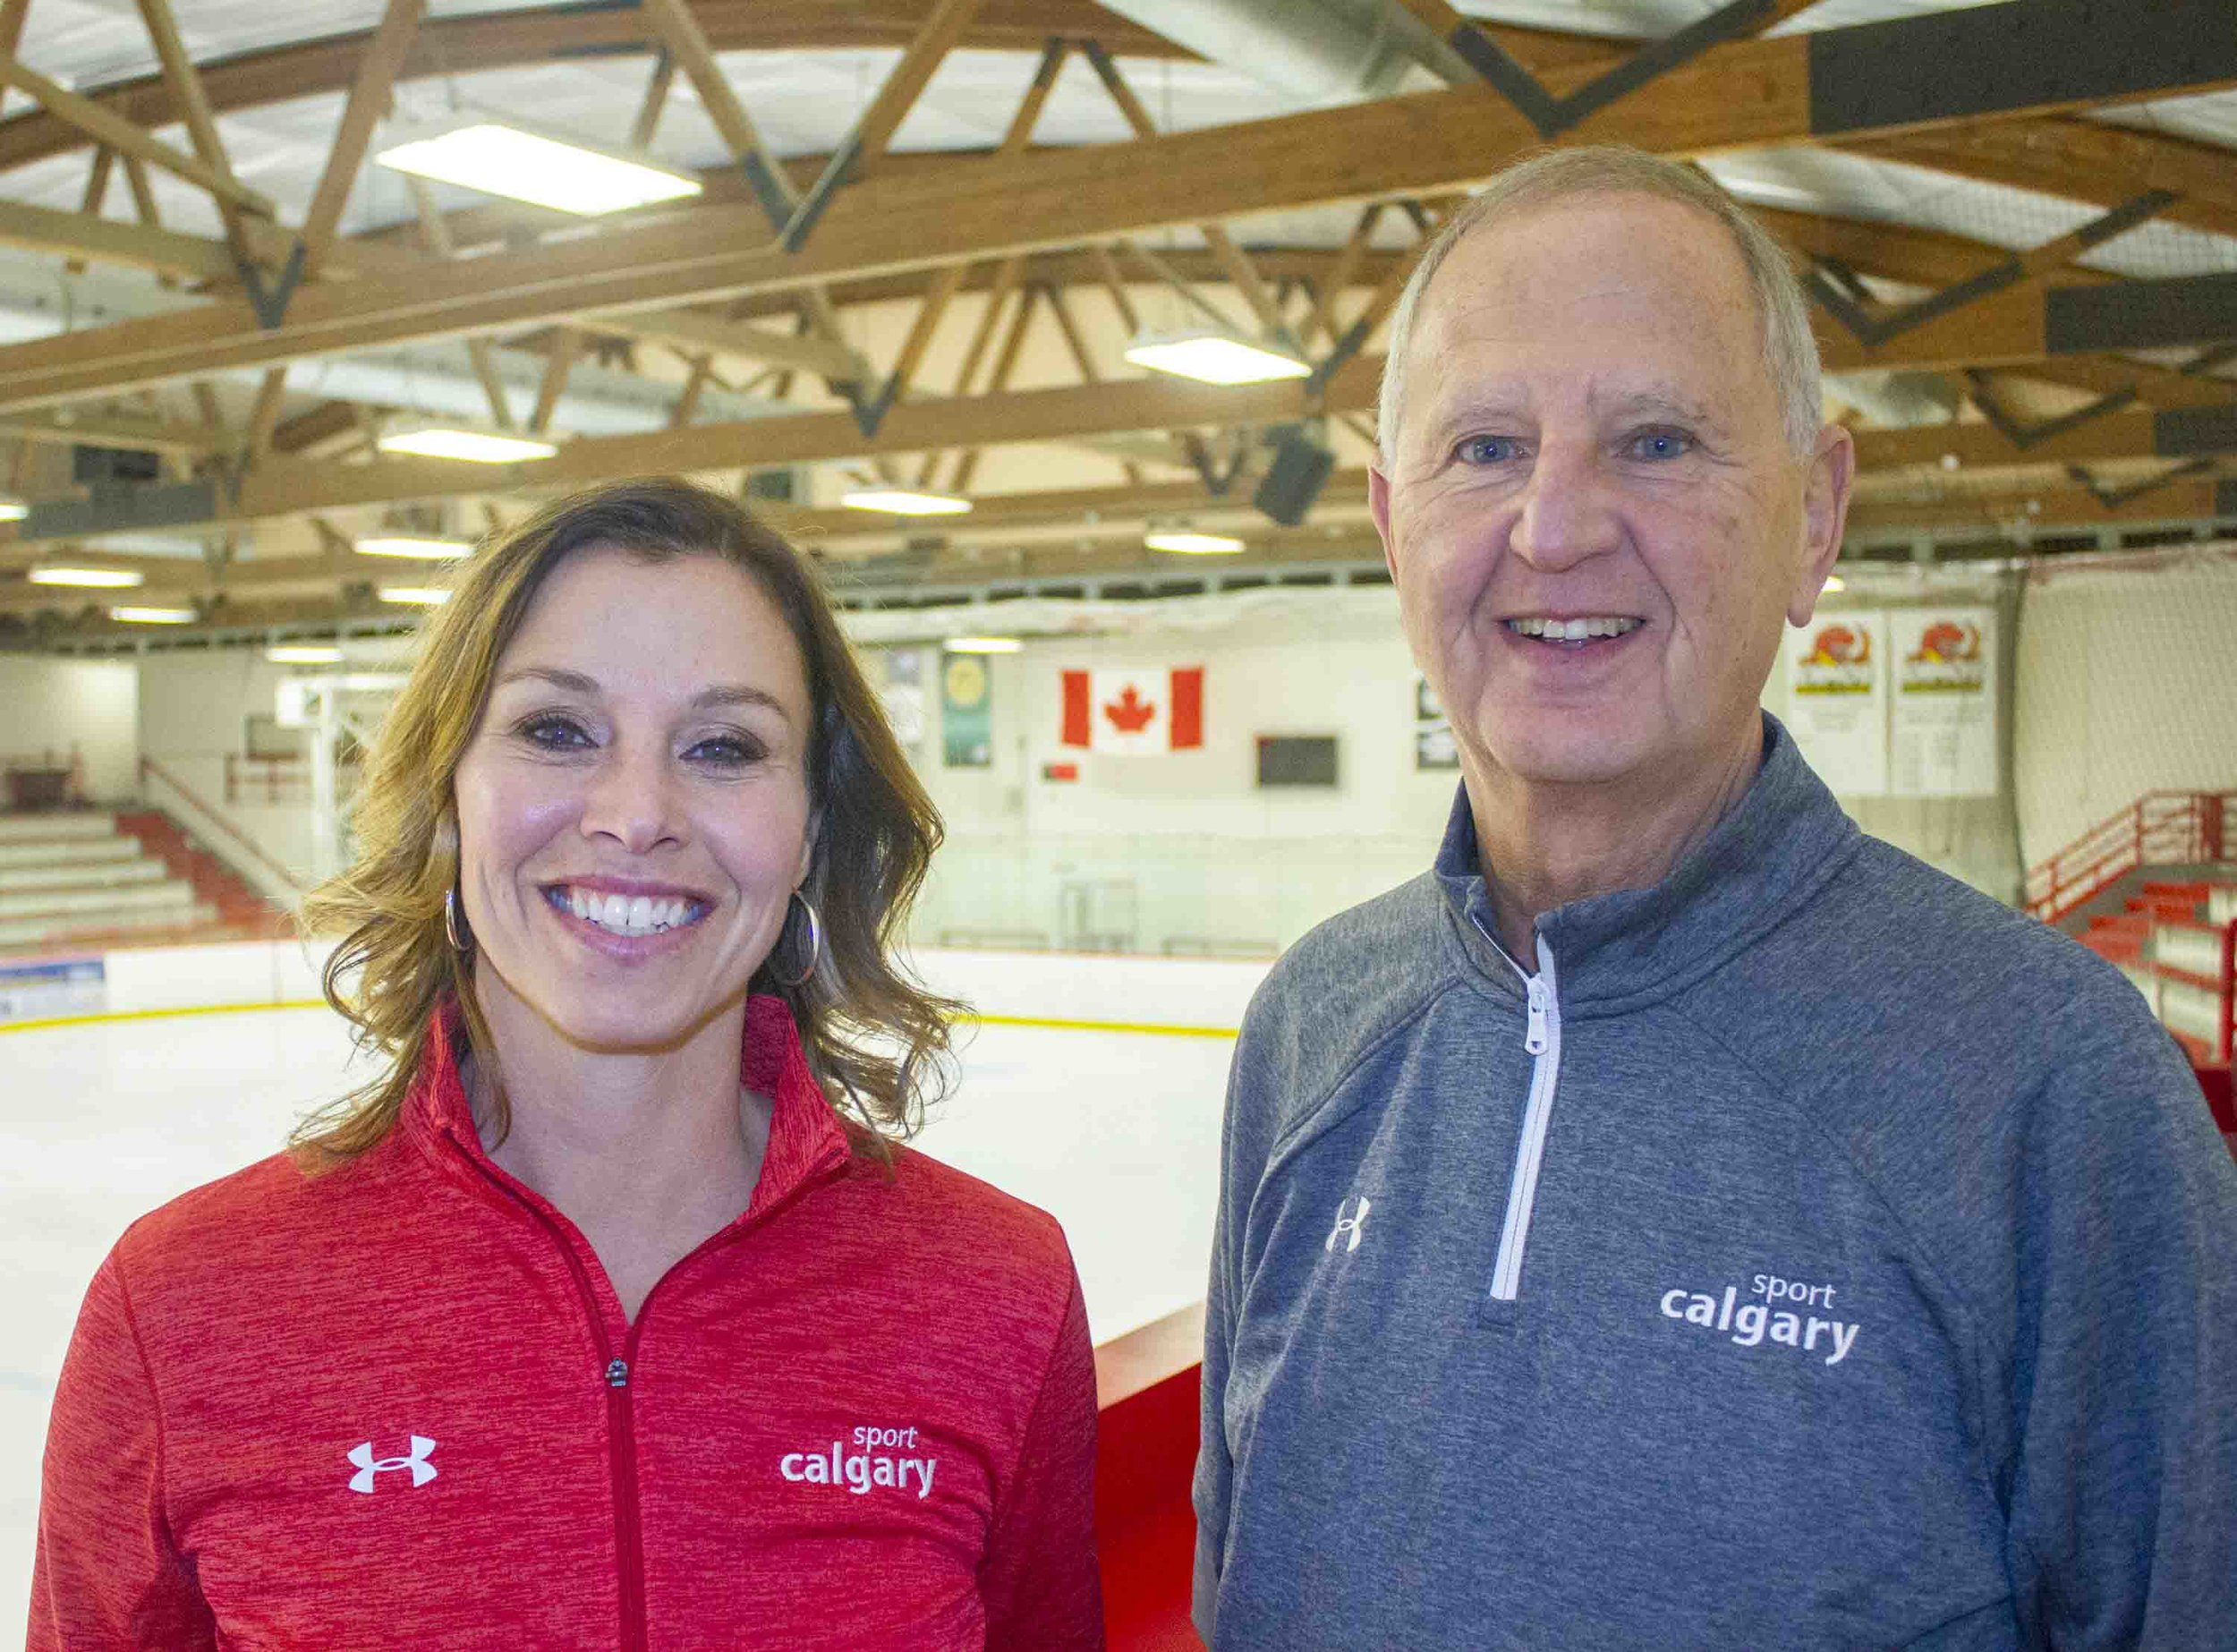 Catriona Le May Doan (Senior Director, Community and Sport Engagement) and Murray Sigler (CEO) with Sport Calgary